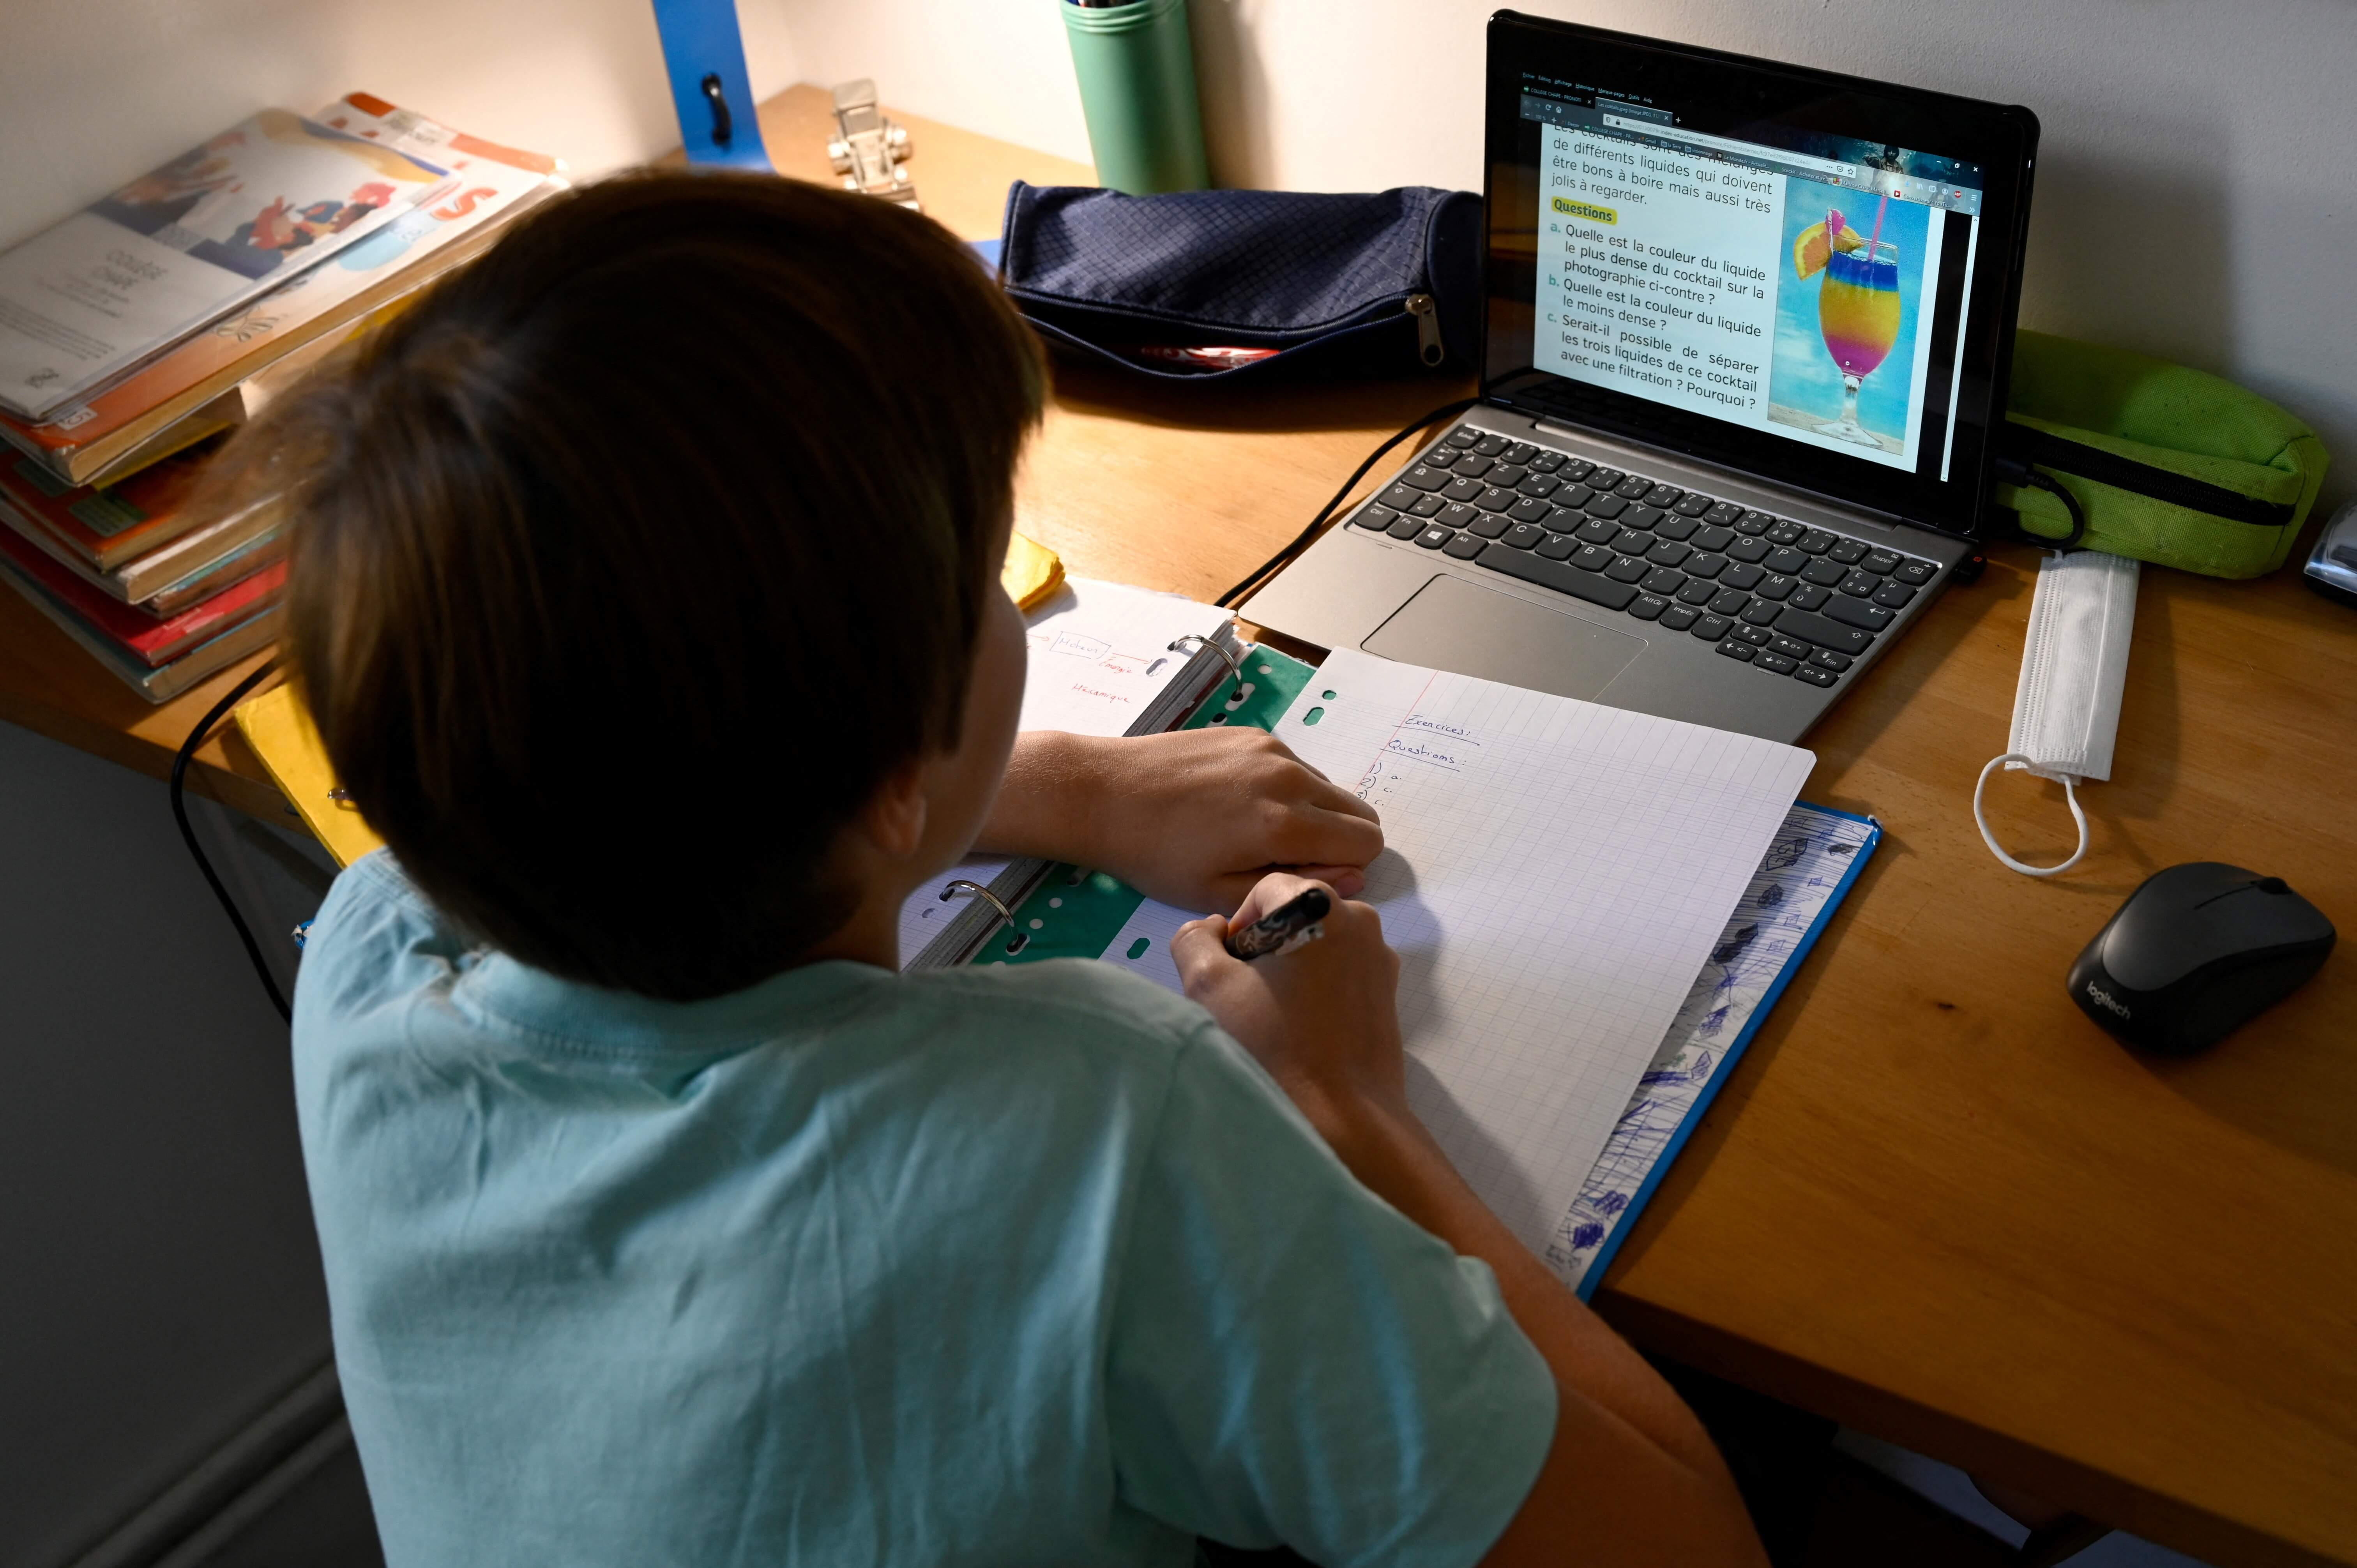 How to improve the way we give homework